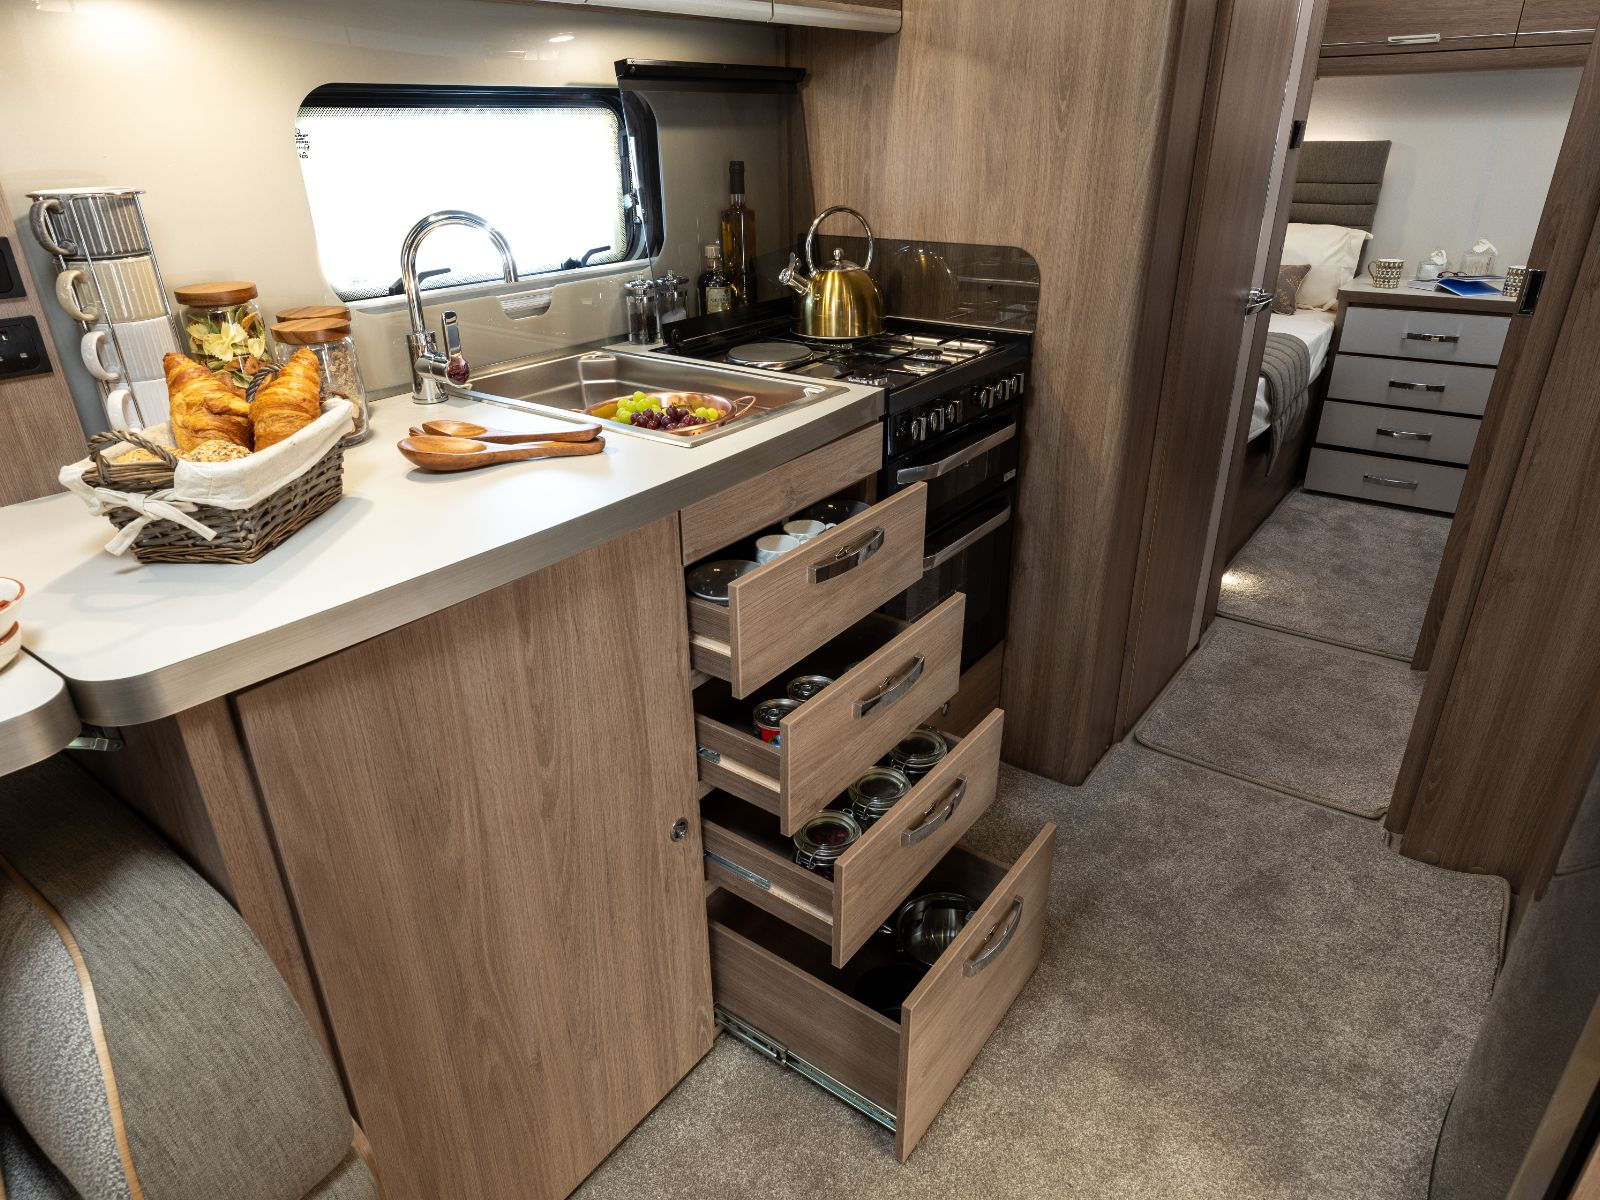 Kitchen layout with oven and under sink storage'